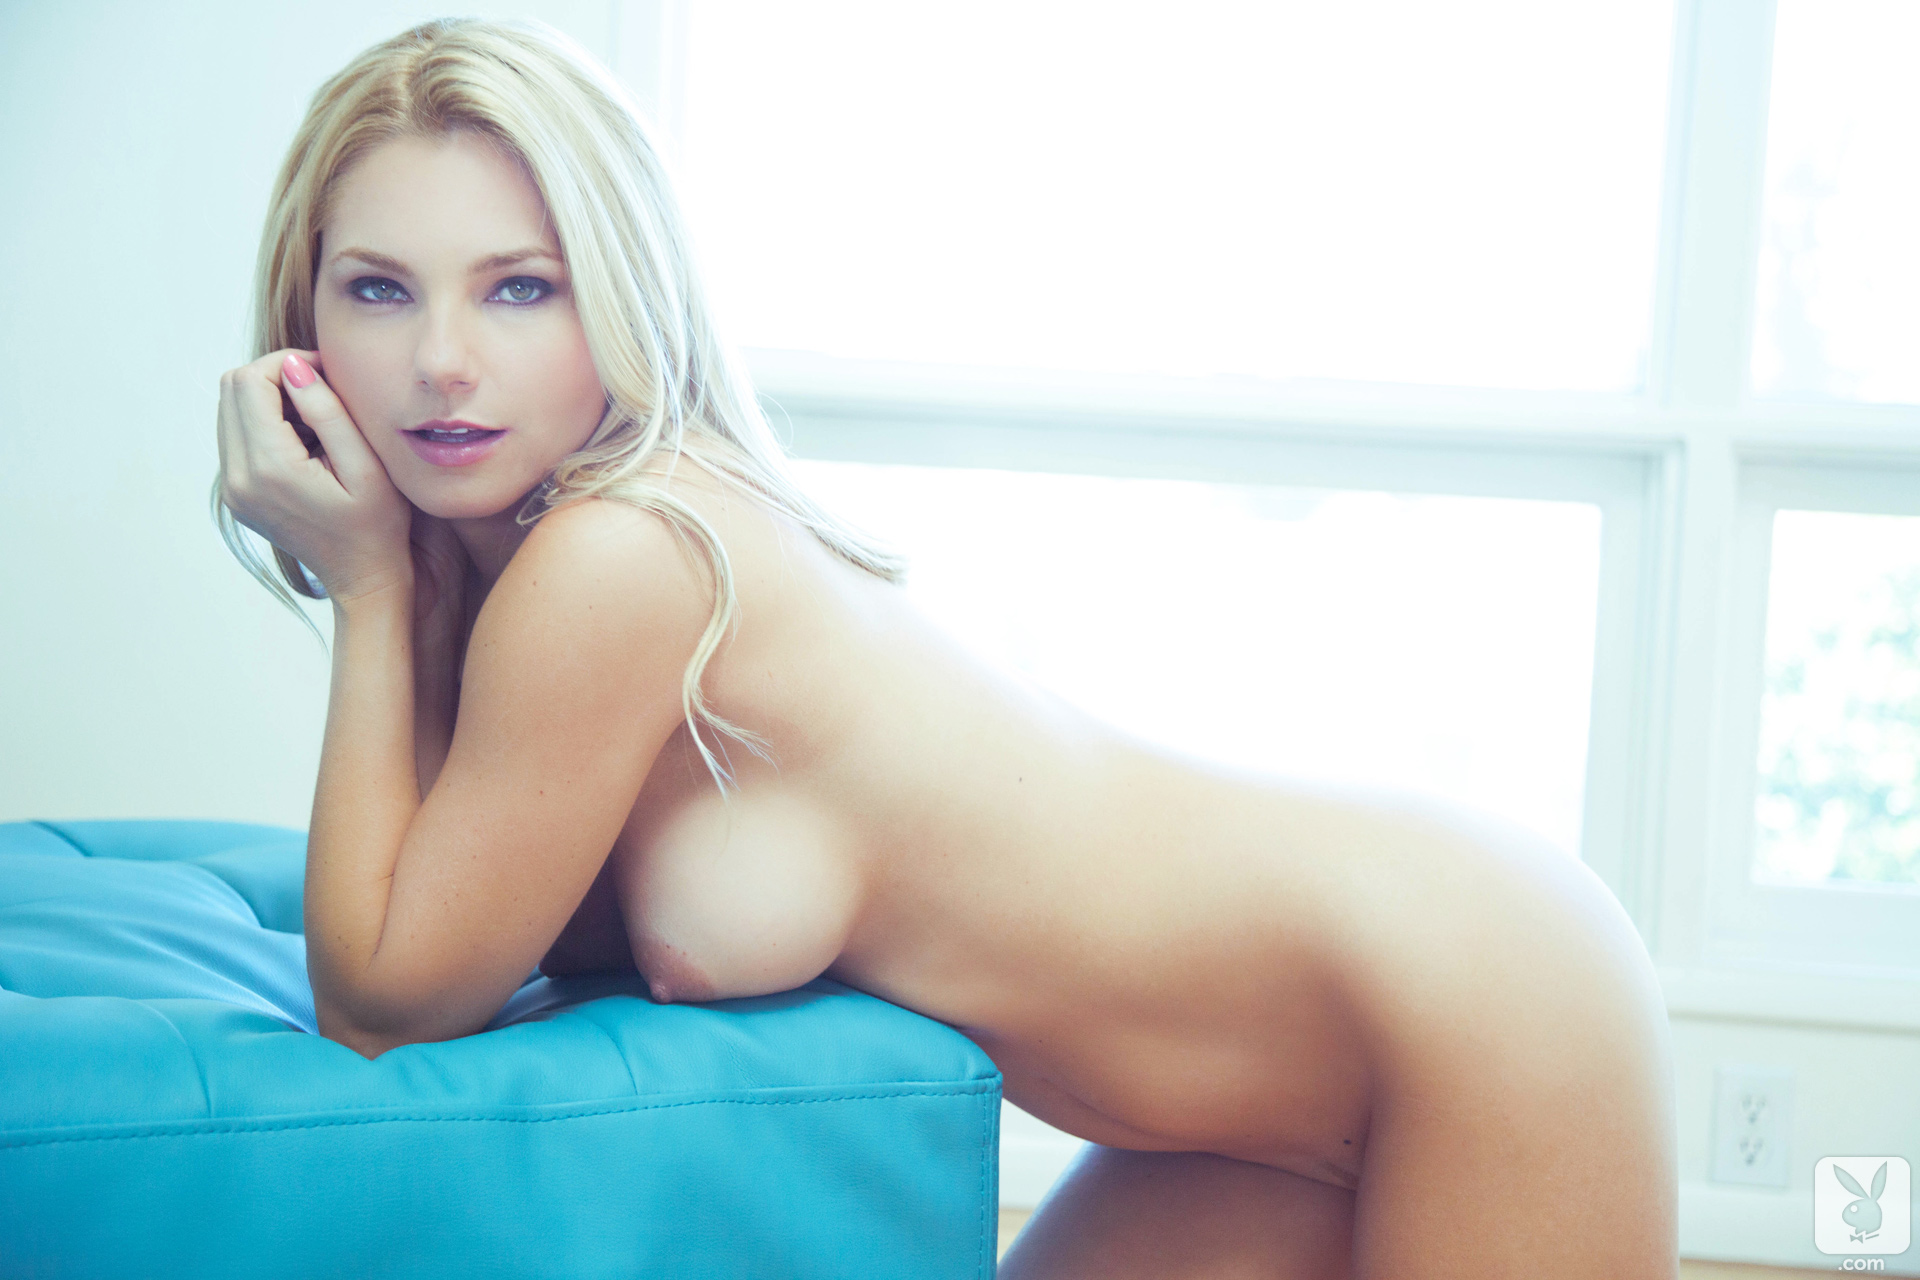 Pretty Blue Eyes Blonde Nude Smiling